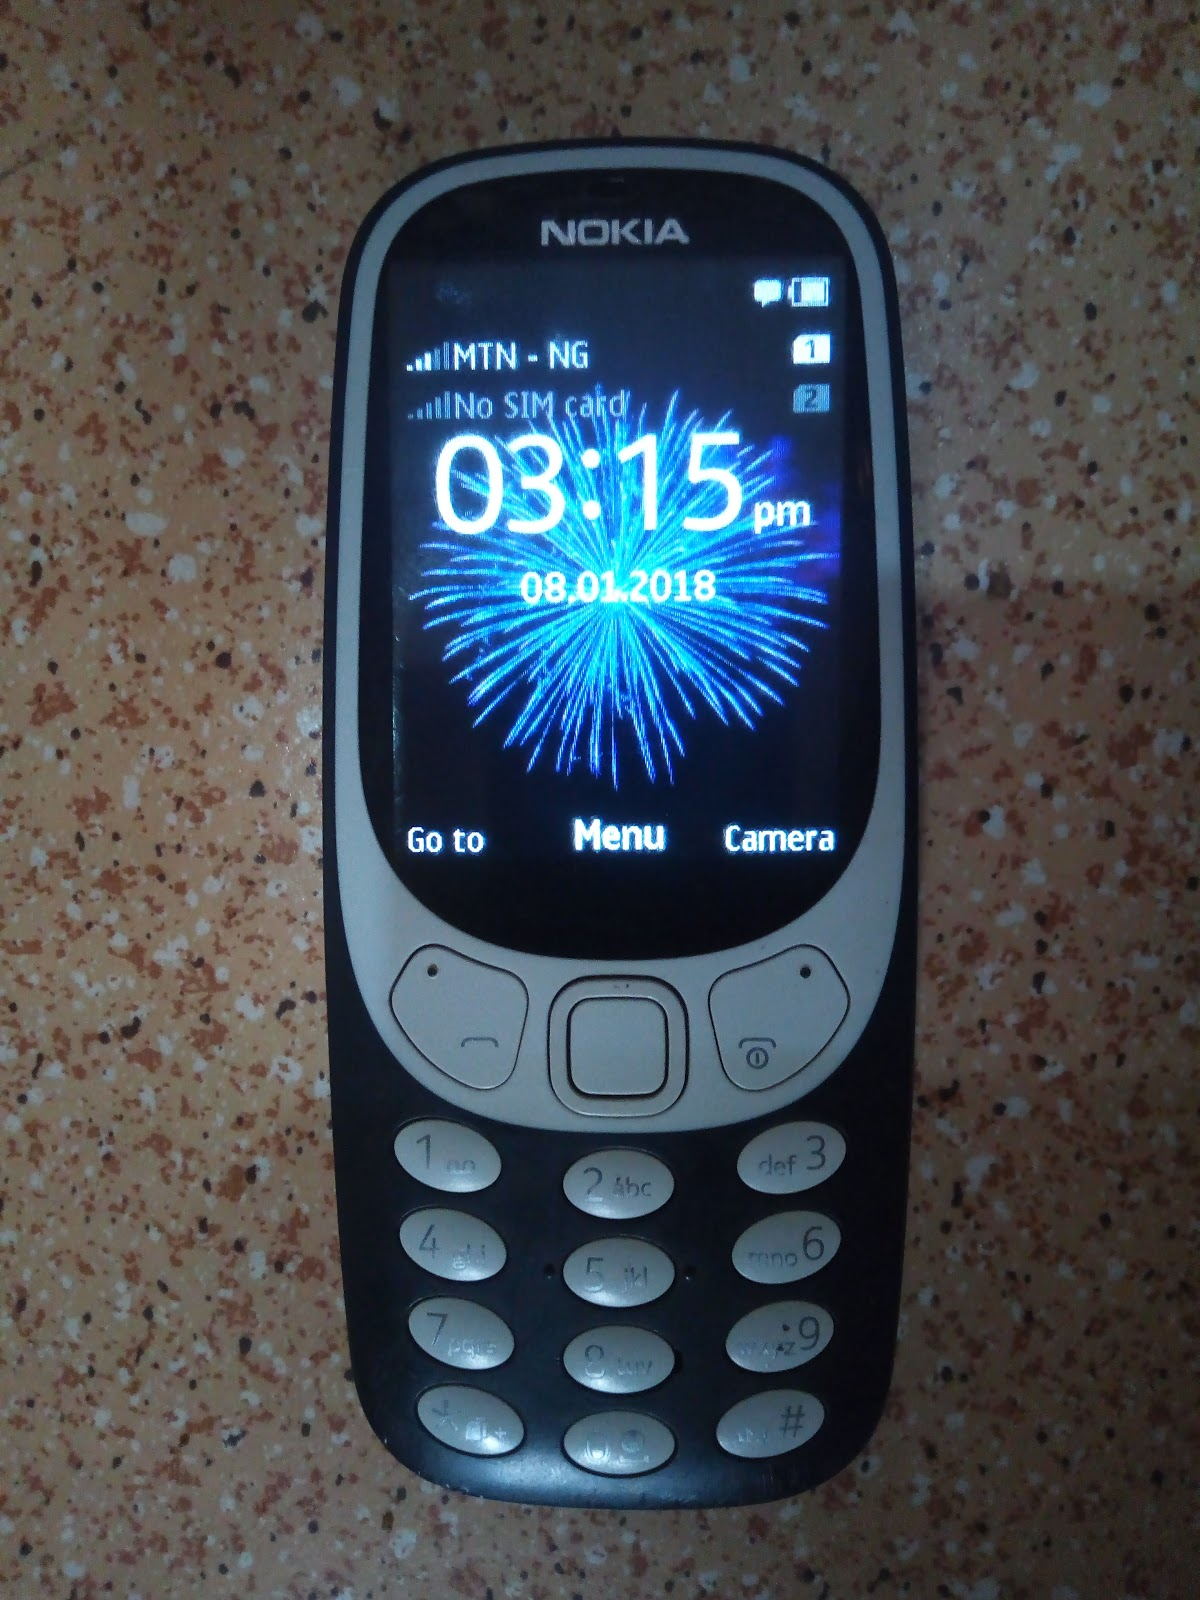 Photo of Full specs of Nokia 3310 4G LTE variant spotted on TENAA